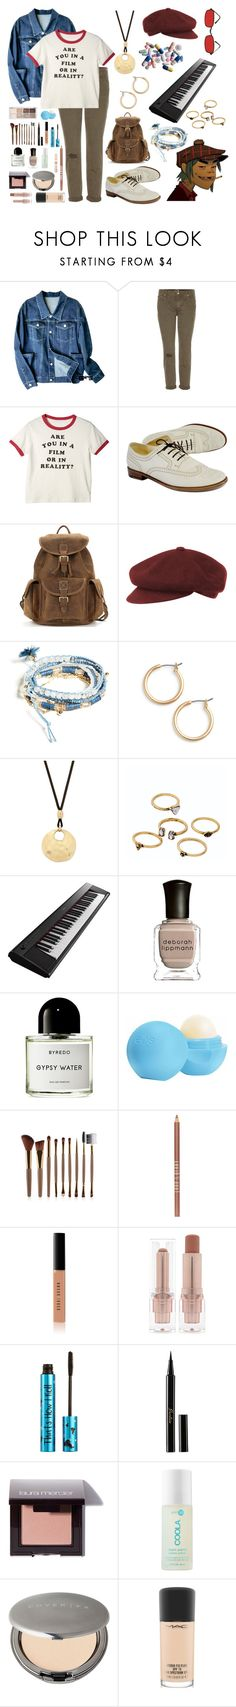 """""""2D"""" by tempermental-teen ❤ liked on Polyvore featuring Mother, Robert Clergerie, kangol, GUESS, Nordstrom, Lucky Brand, WithChic, Yamaha, Deborah Lippmann and Byredo"""